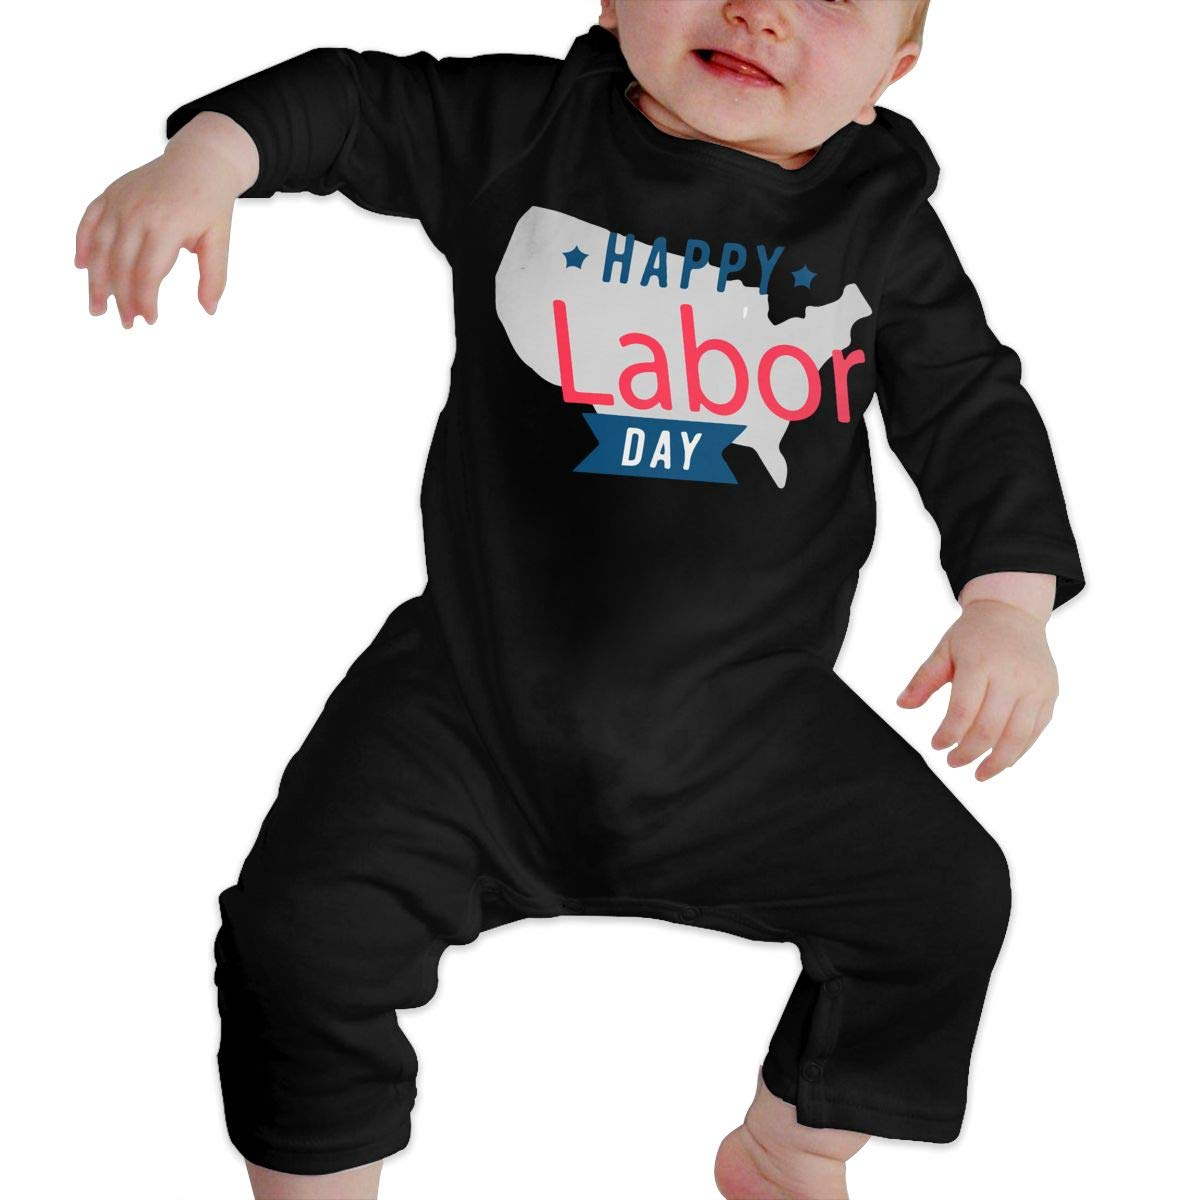 UGFGF-S3 Happy Labor Day Baby Boy Girl Long Sleeve Romper Jumpsuit Toddler Jumpsuit